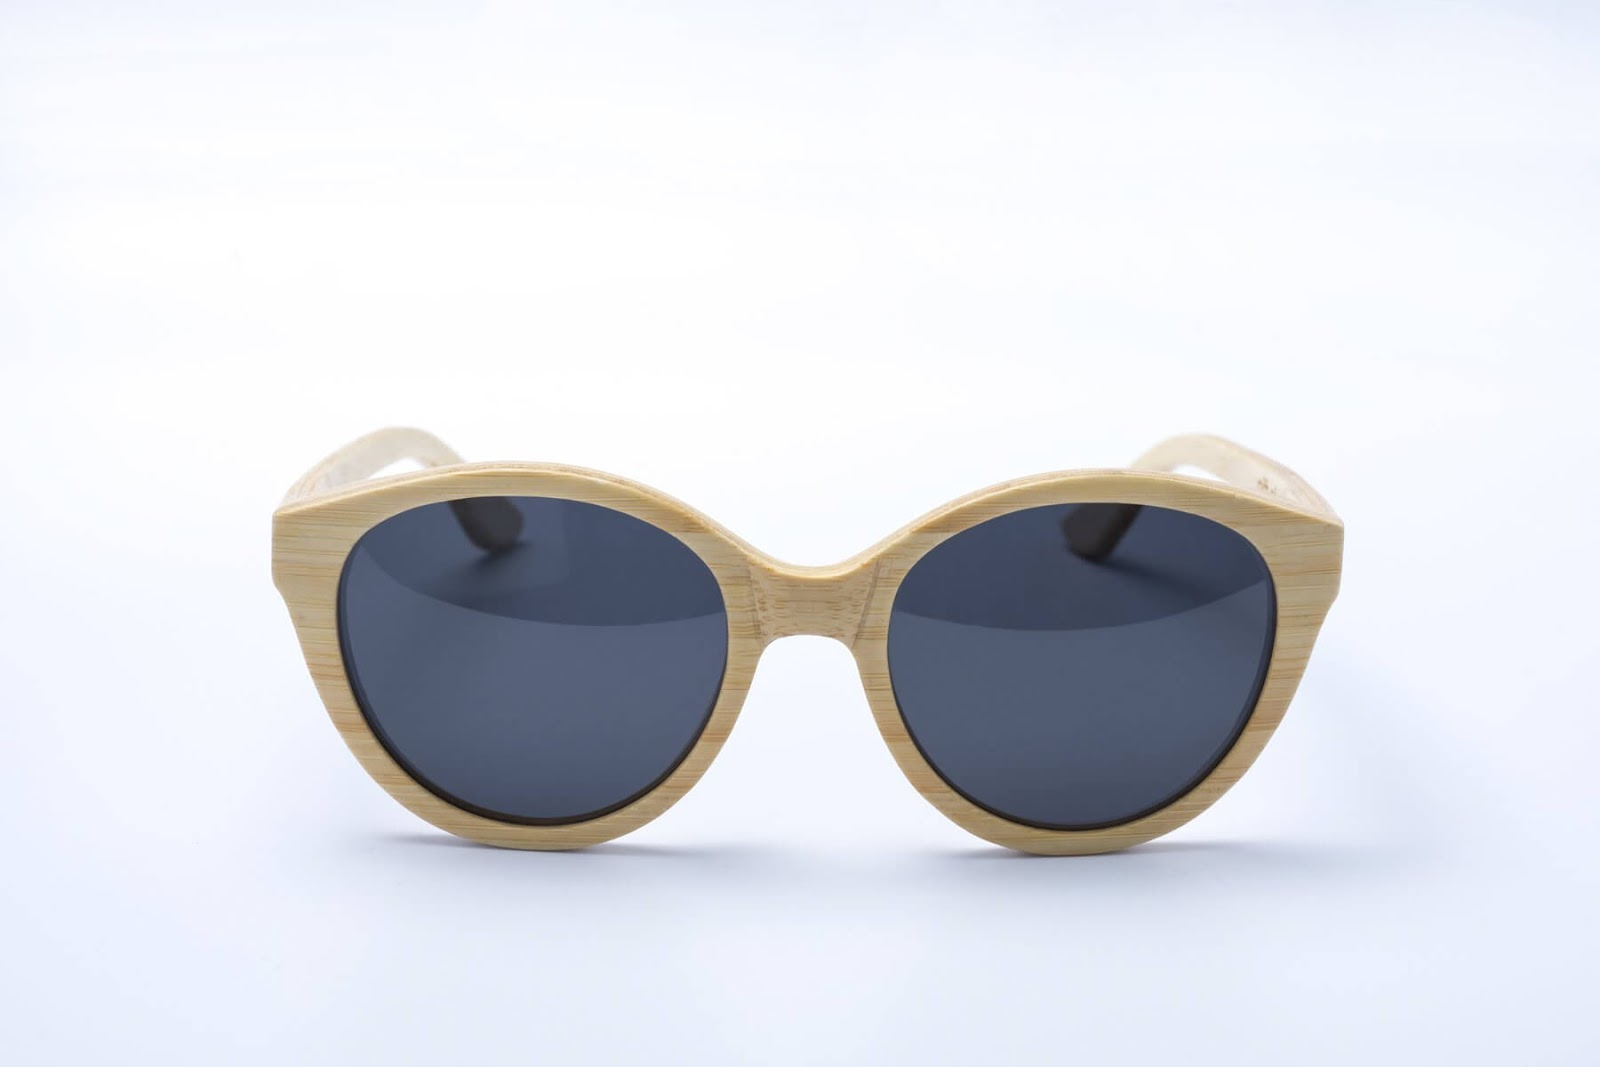 Wear Panda Joyce Sunglasses